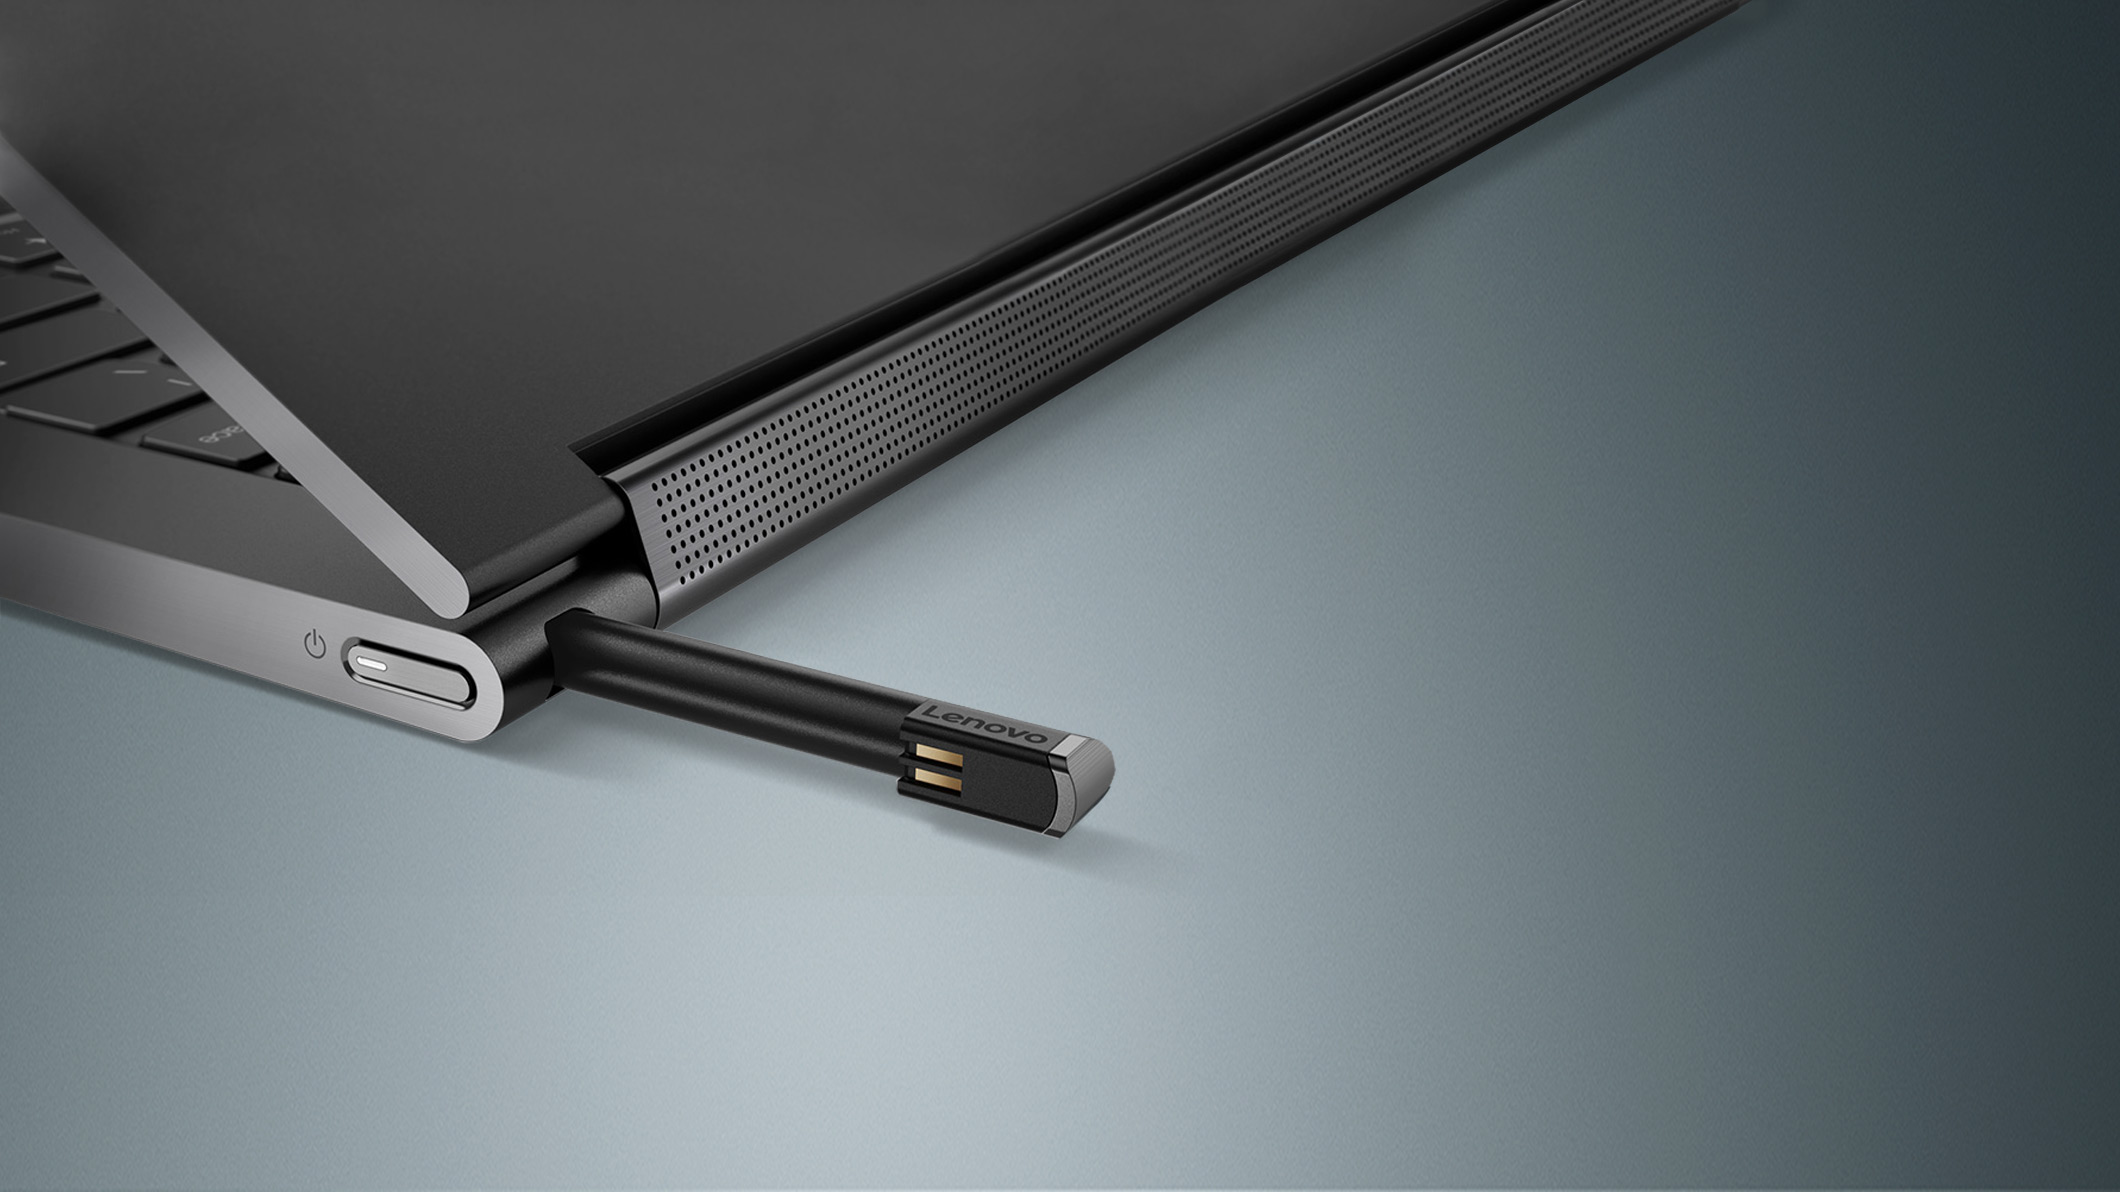 Partial view of the Lenovo Yoga C930 showing the Pen Garage